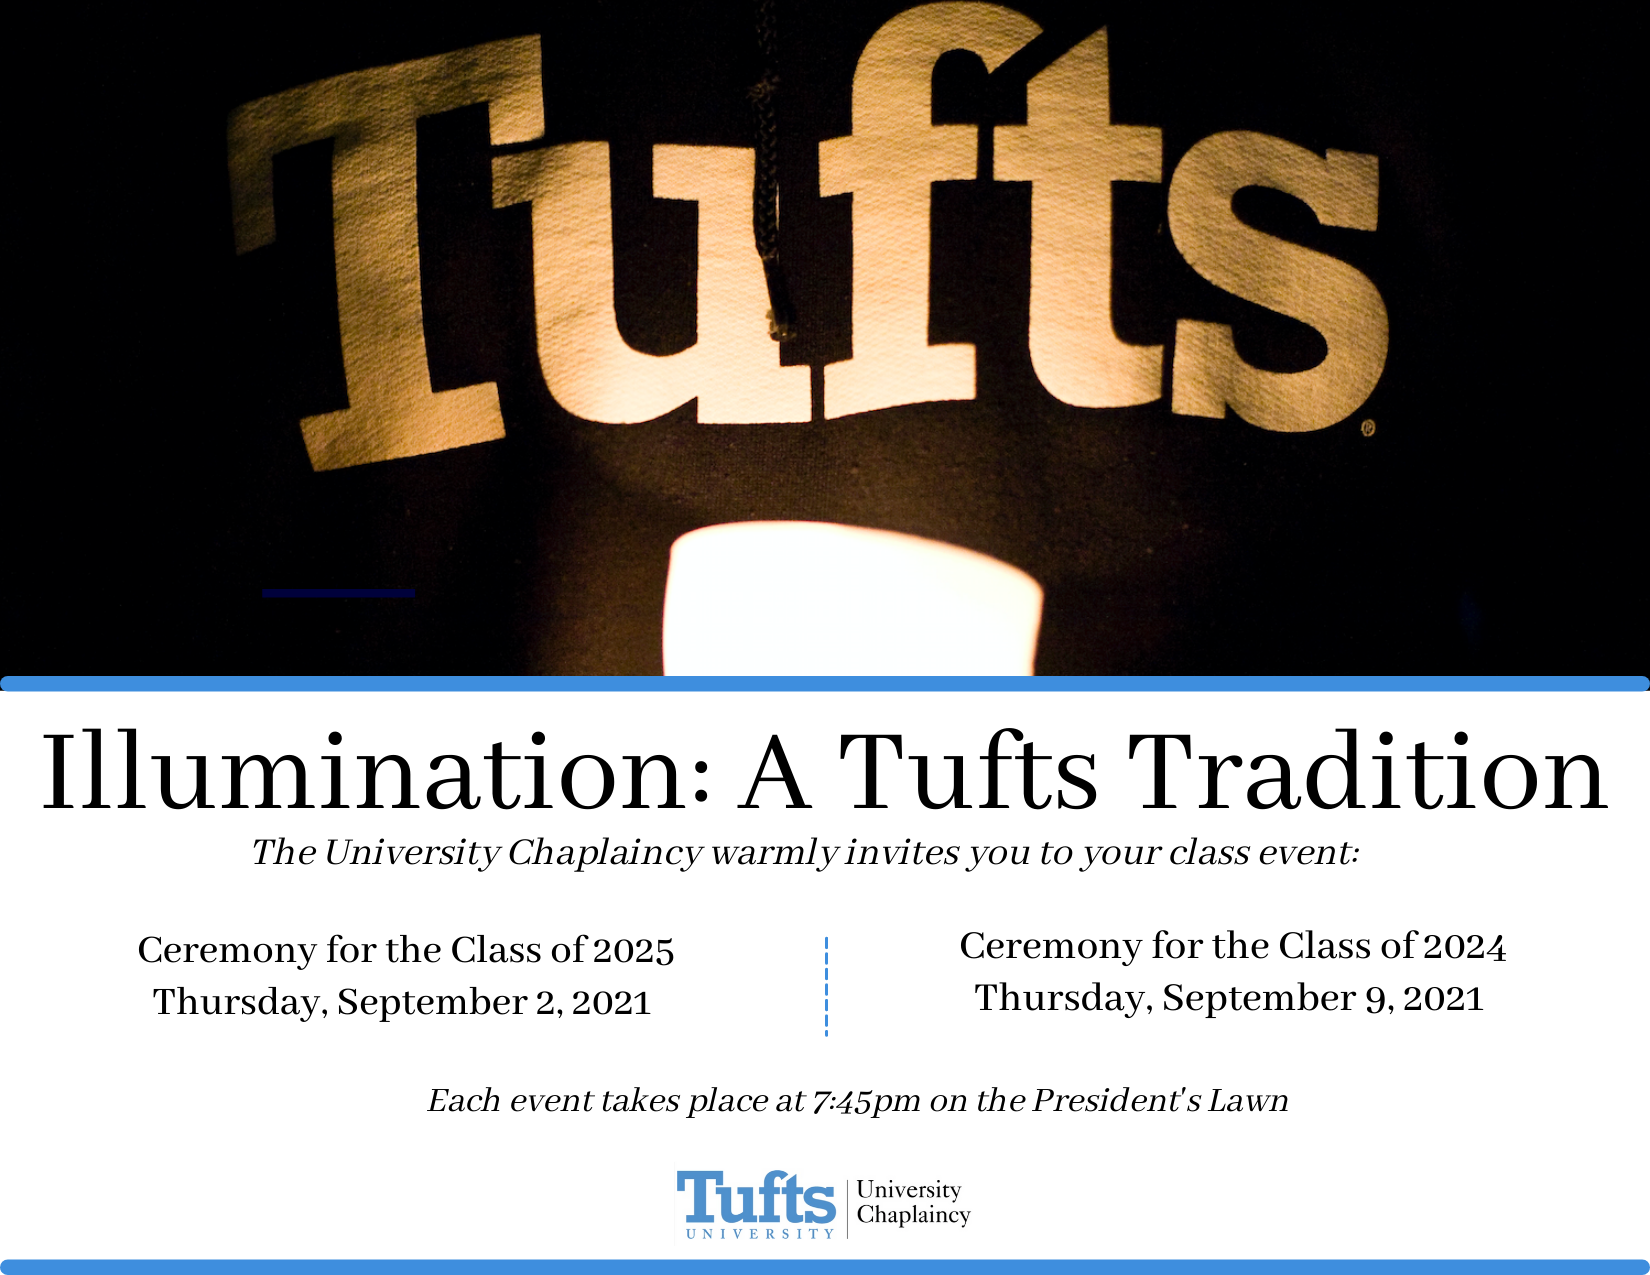 Illumination for the Class of 2025 and the Class of 2024